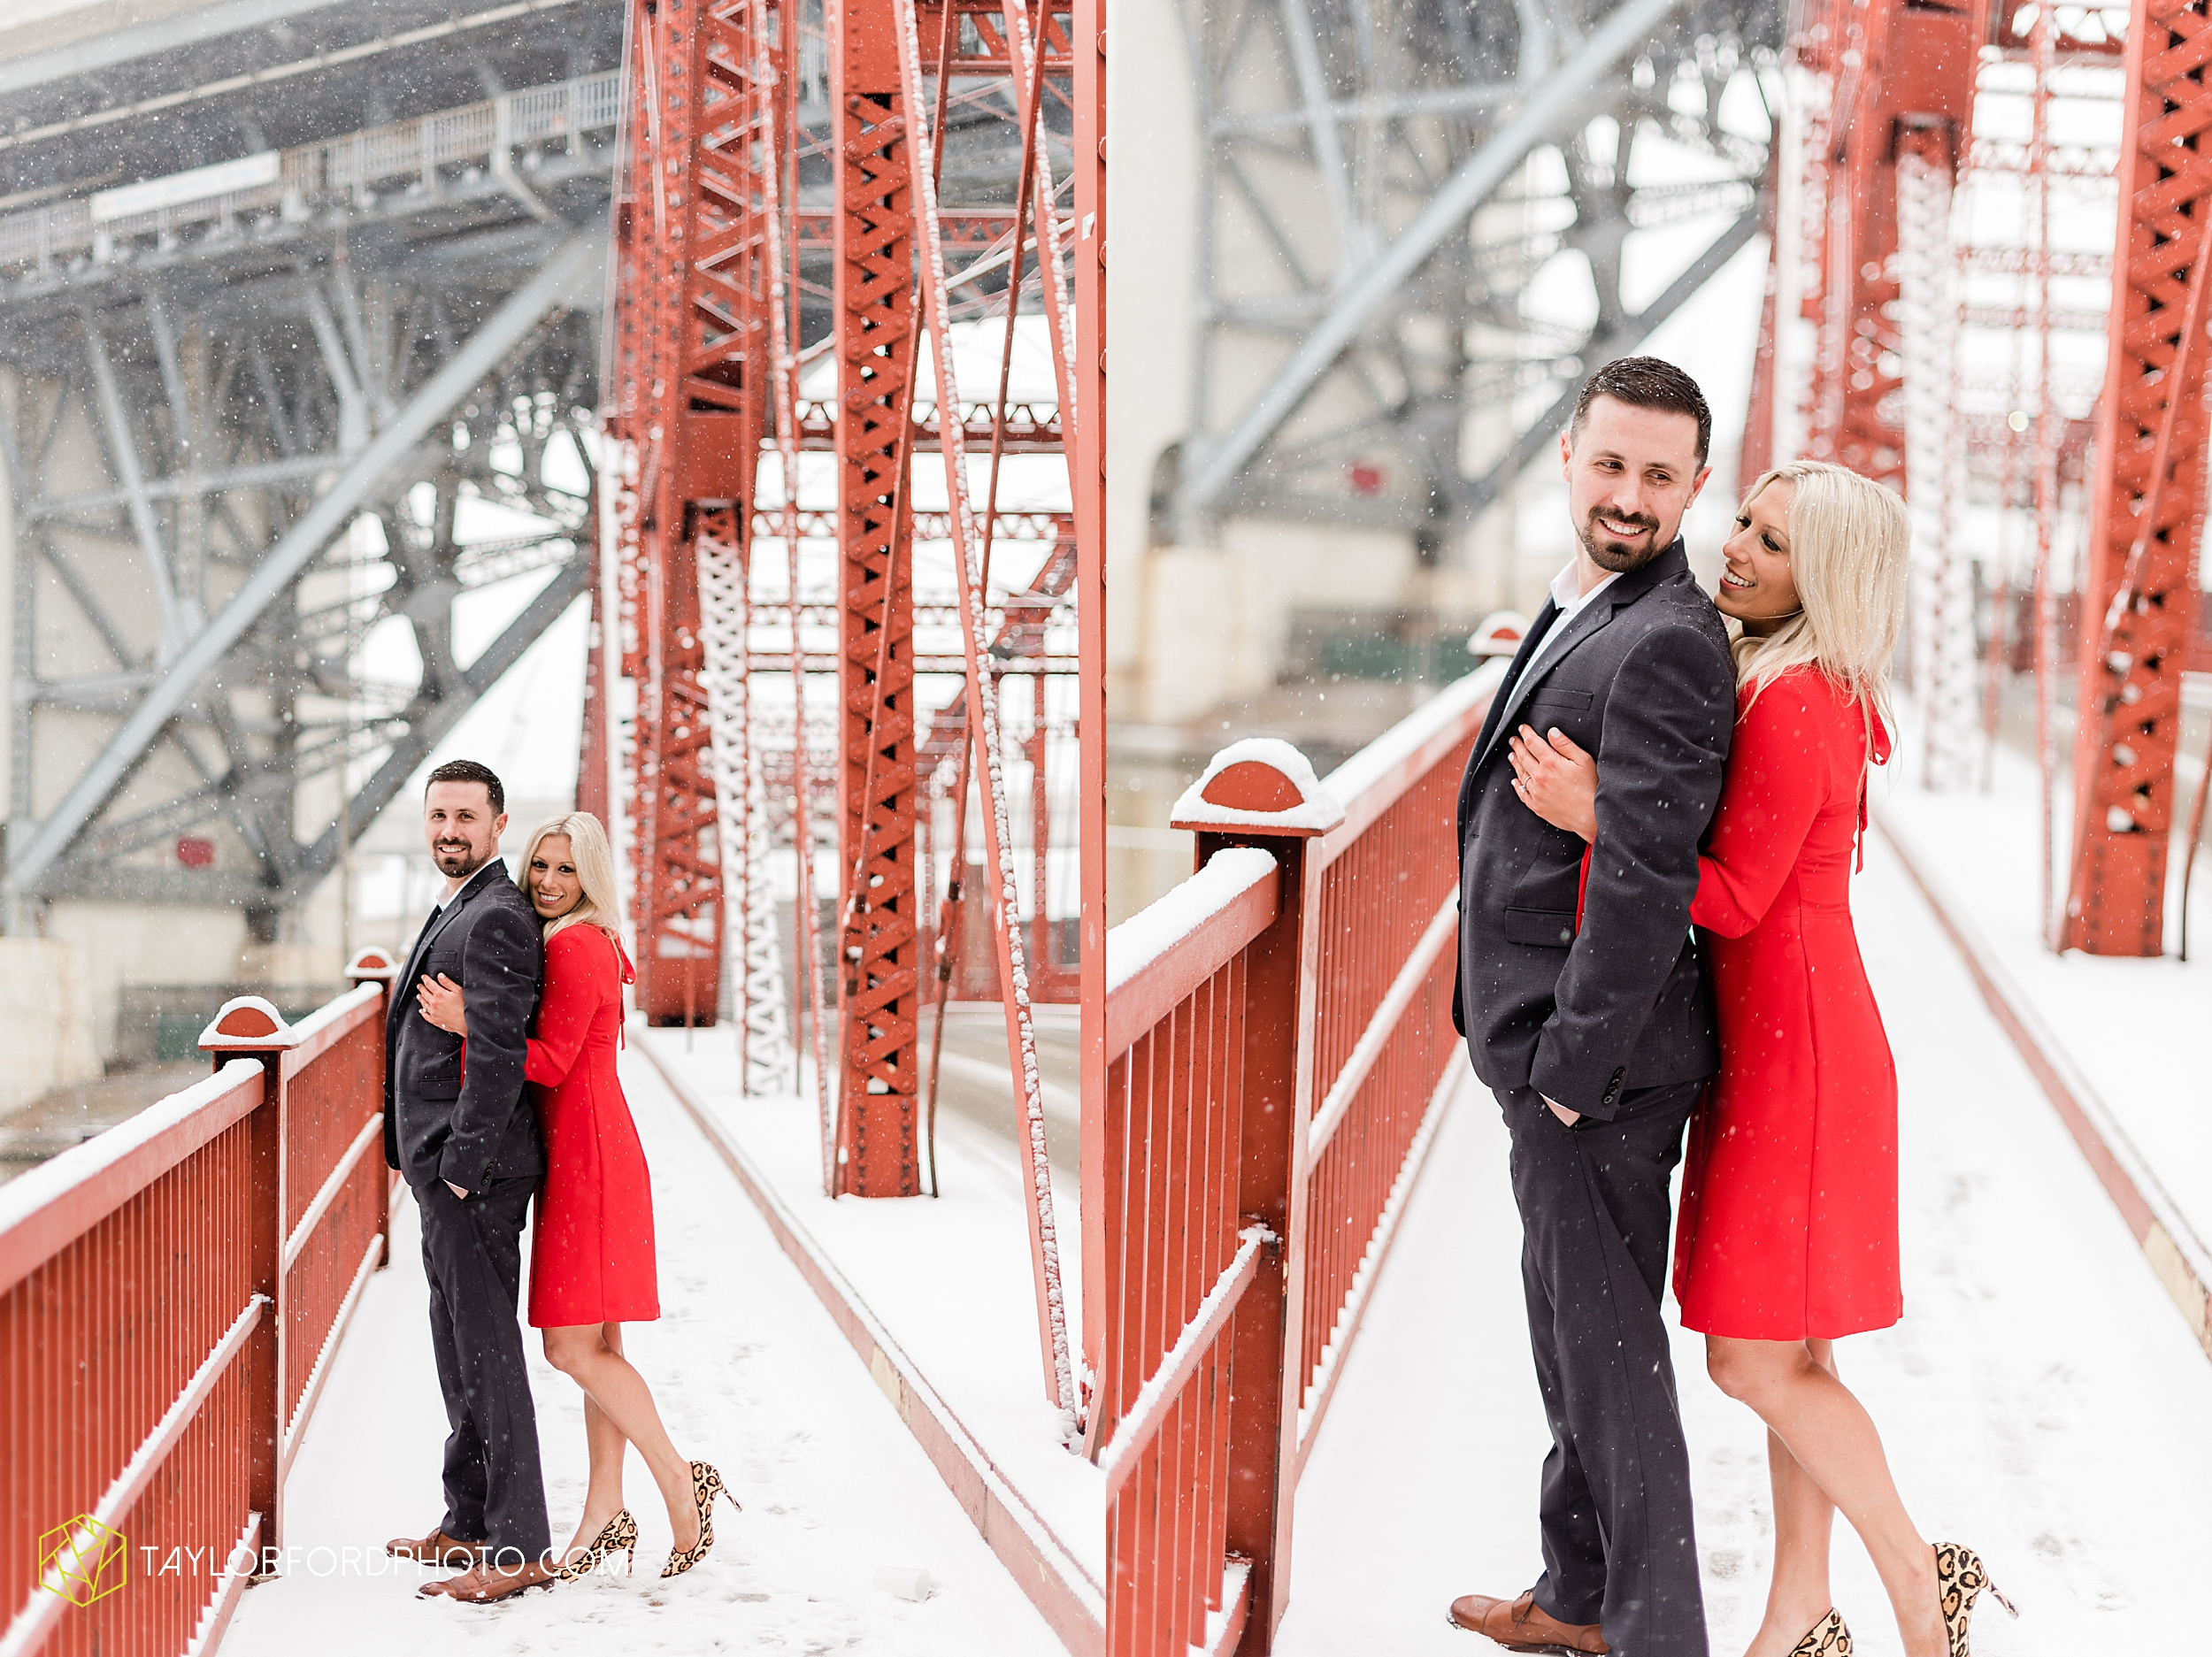 brittany-phil-downtown-cleveland-viaduct-the-flats-east-bank-rocky-river-reservation-engagement-photography-taylor-ford-hirschy-photographer_2429.jpg